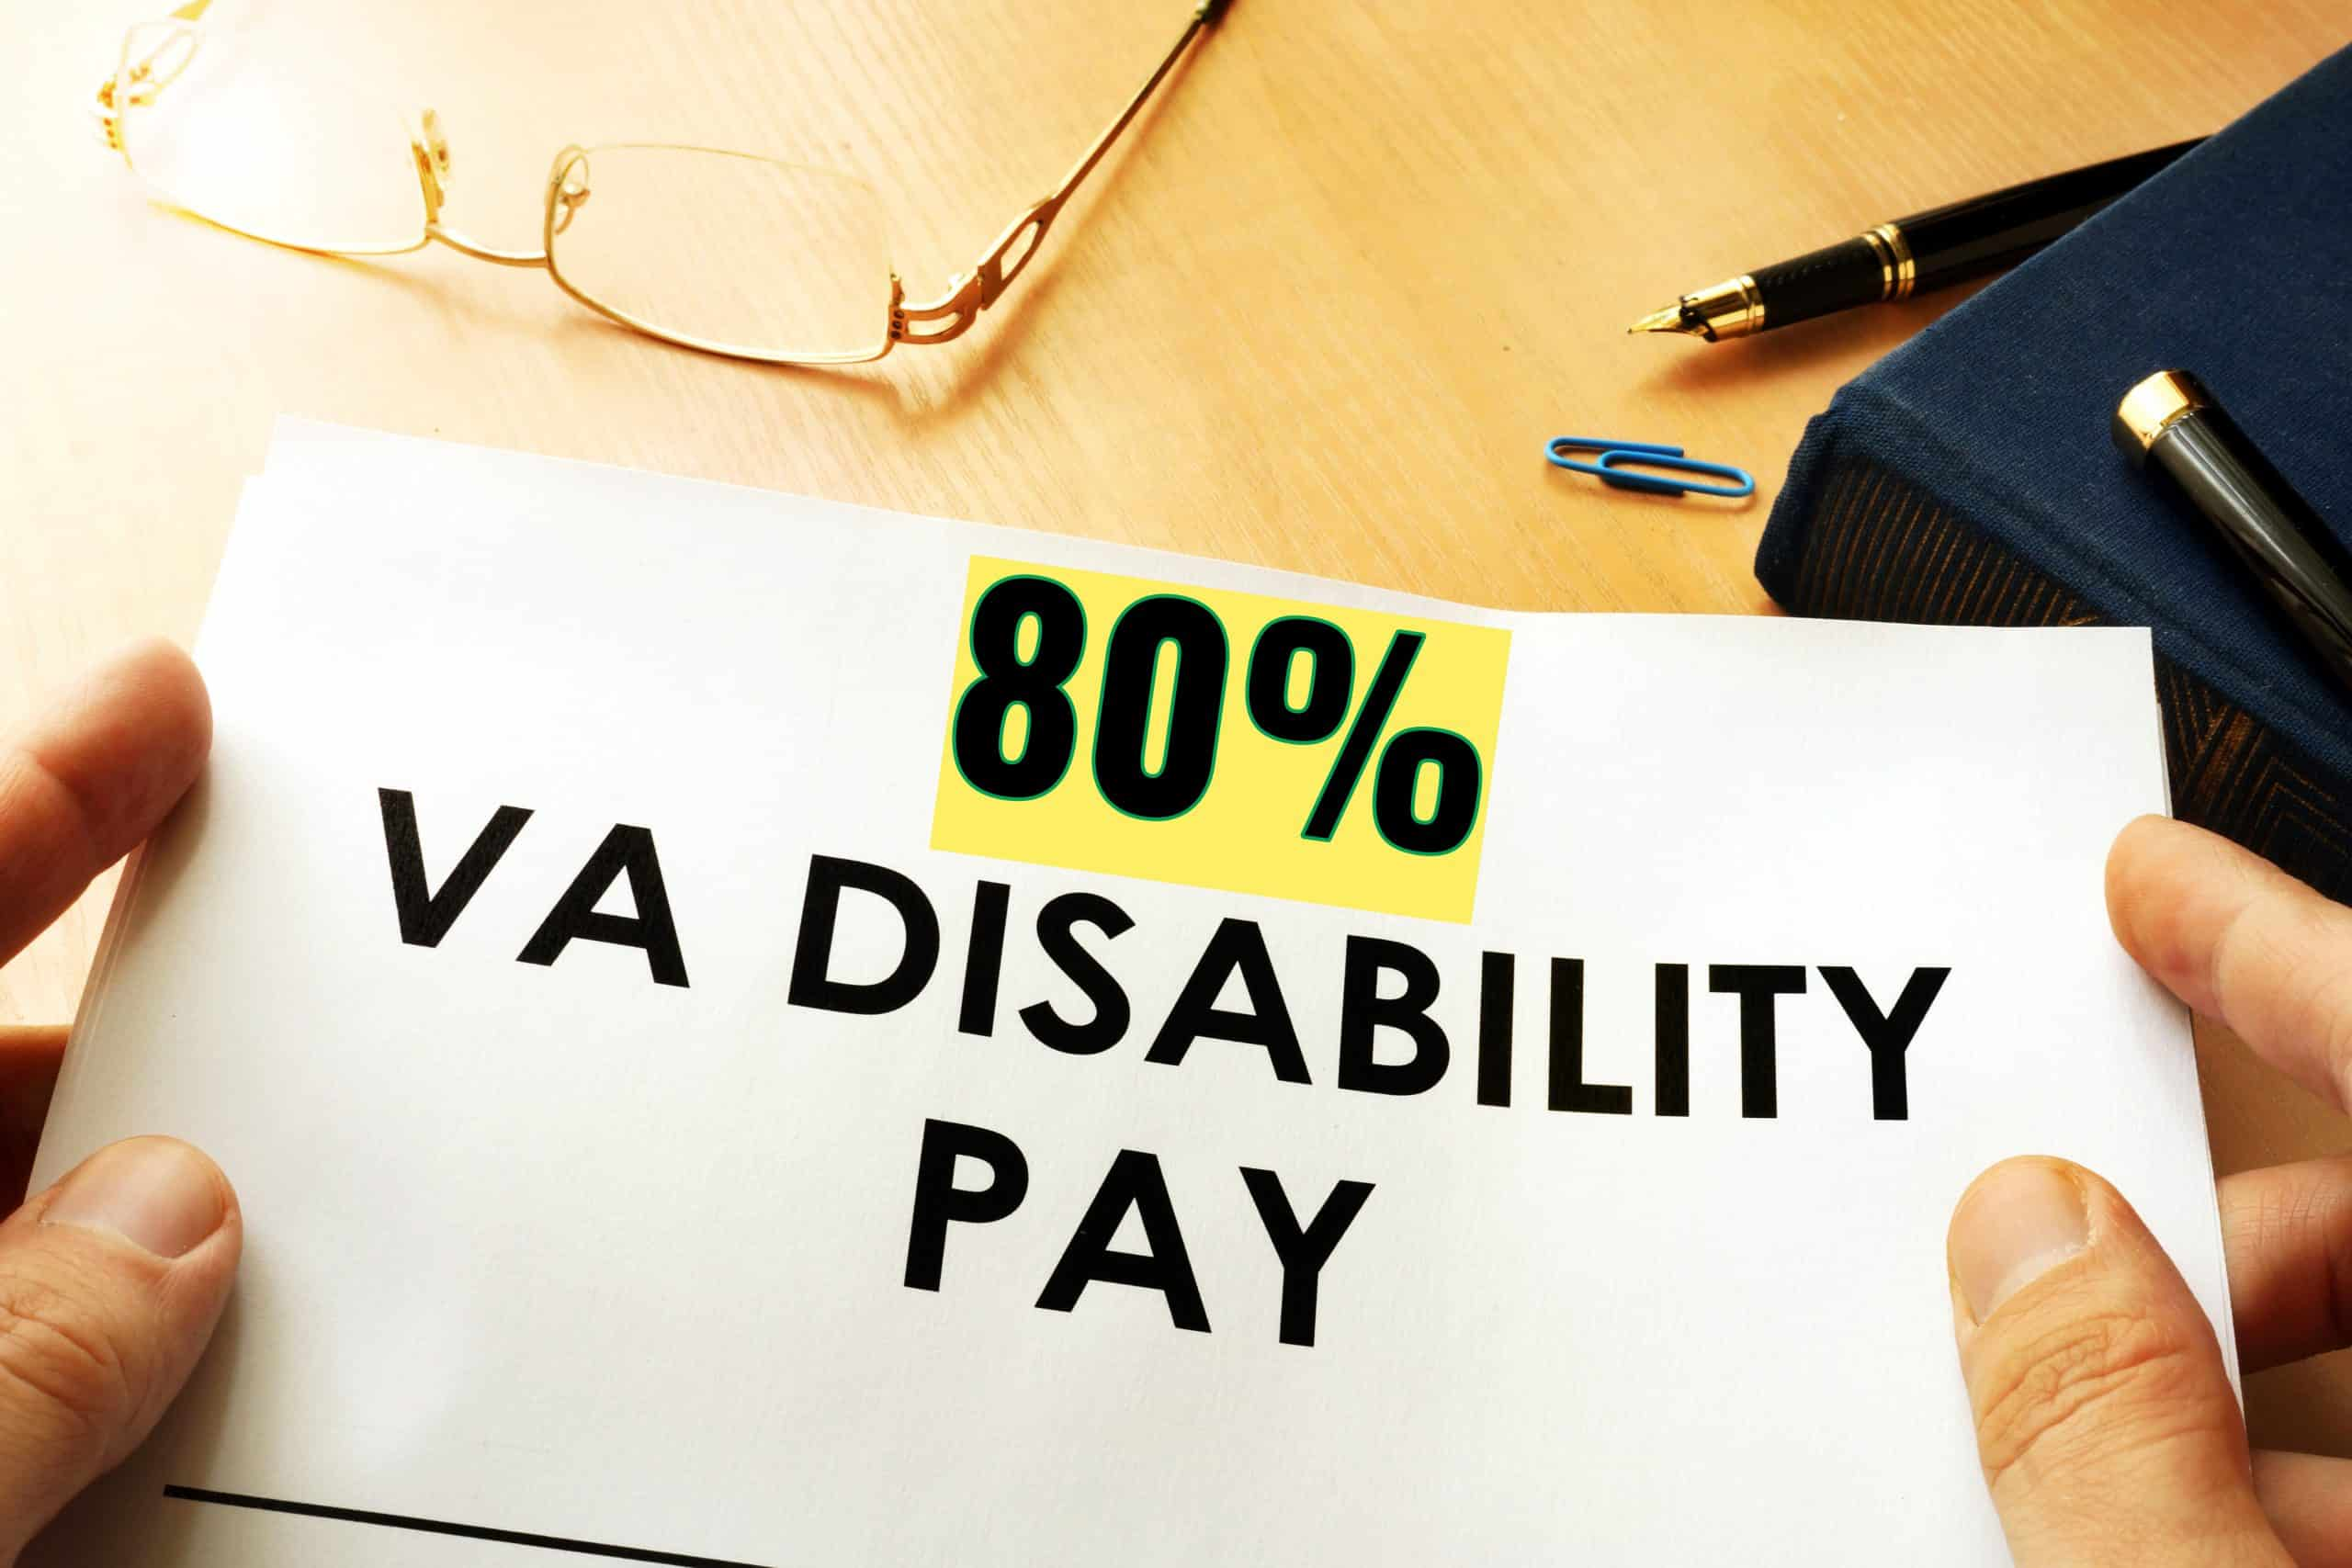 80 Percent VA Disability